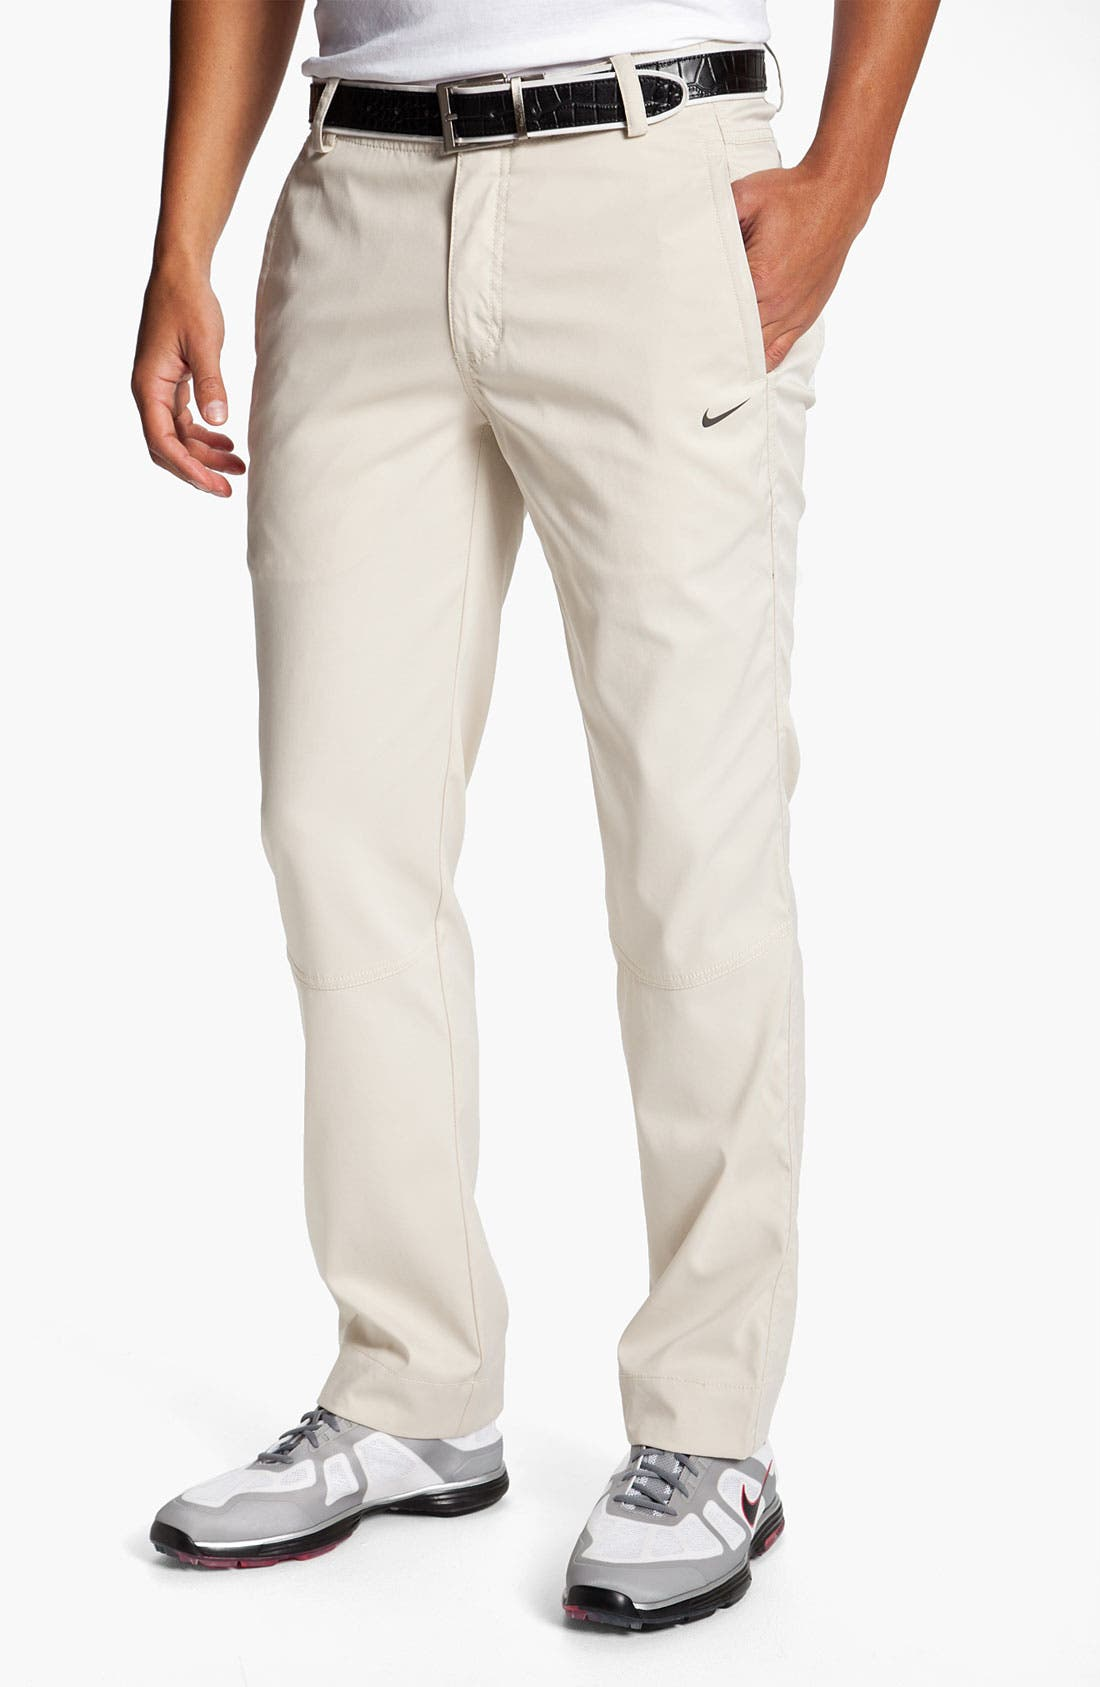 Main Image - Nike Golf 'Sport Novelty' Dri-FIT Golf Pants